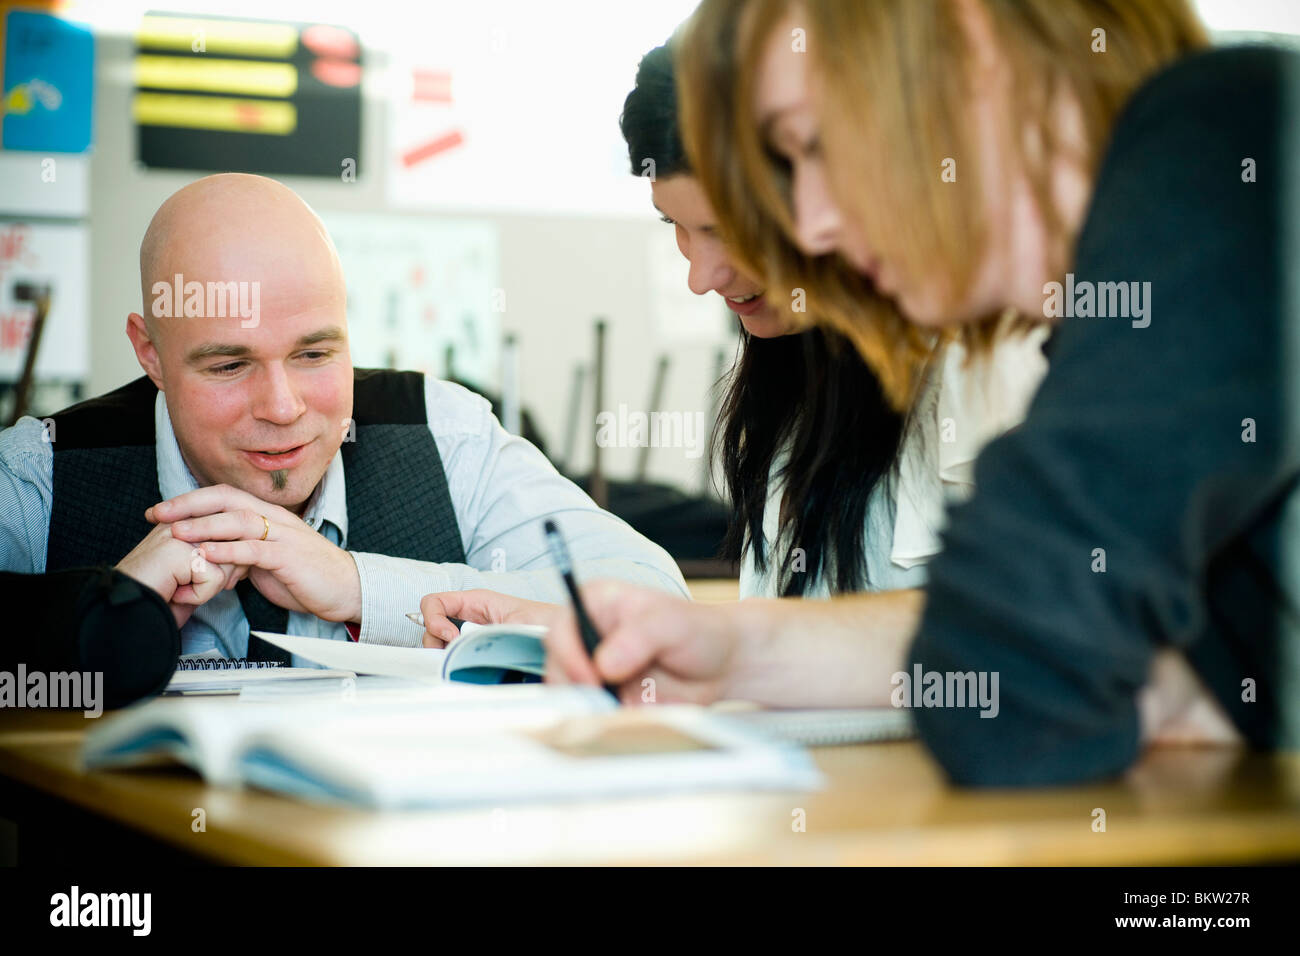 Teacher and students - Stock Image